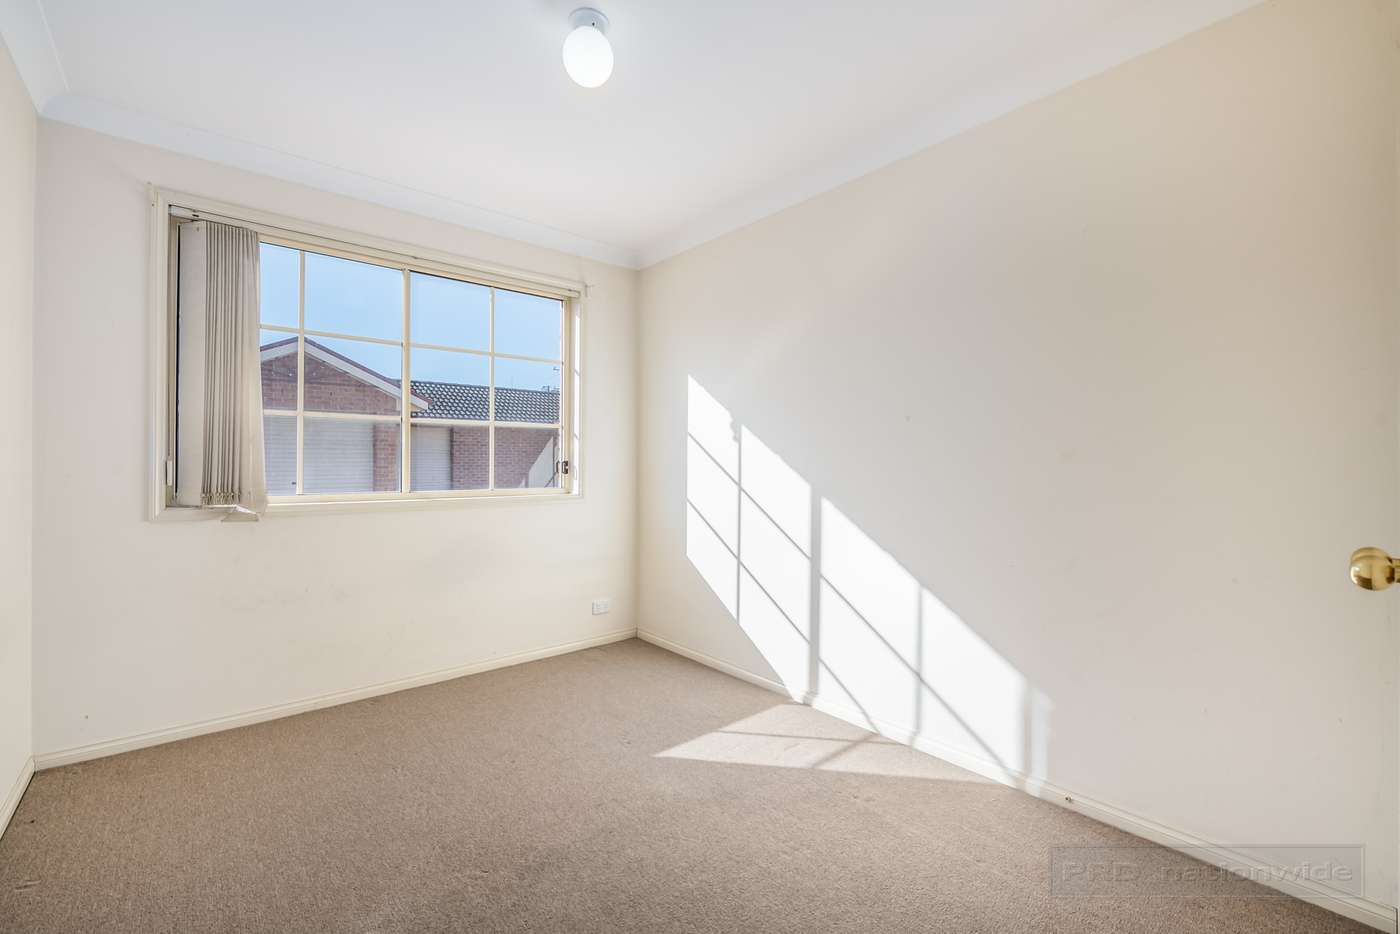 Sixth view of Homely unit listing, 6/298 Park Avenue, Kotara NSW 2289